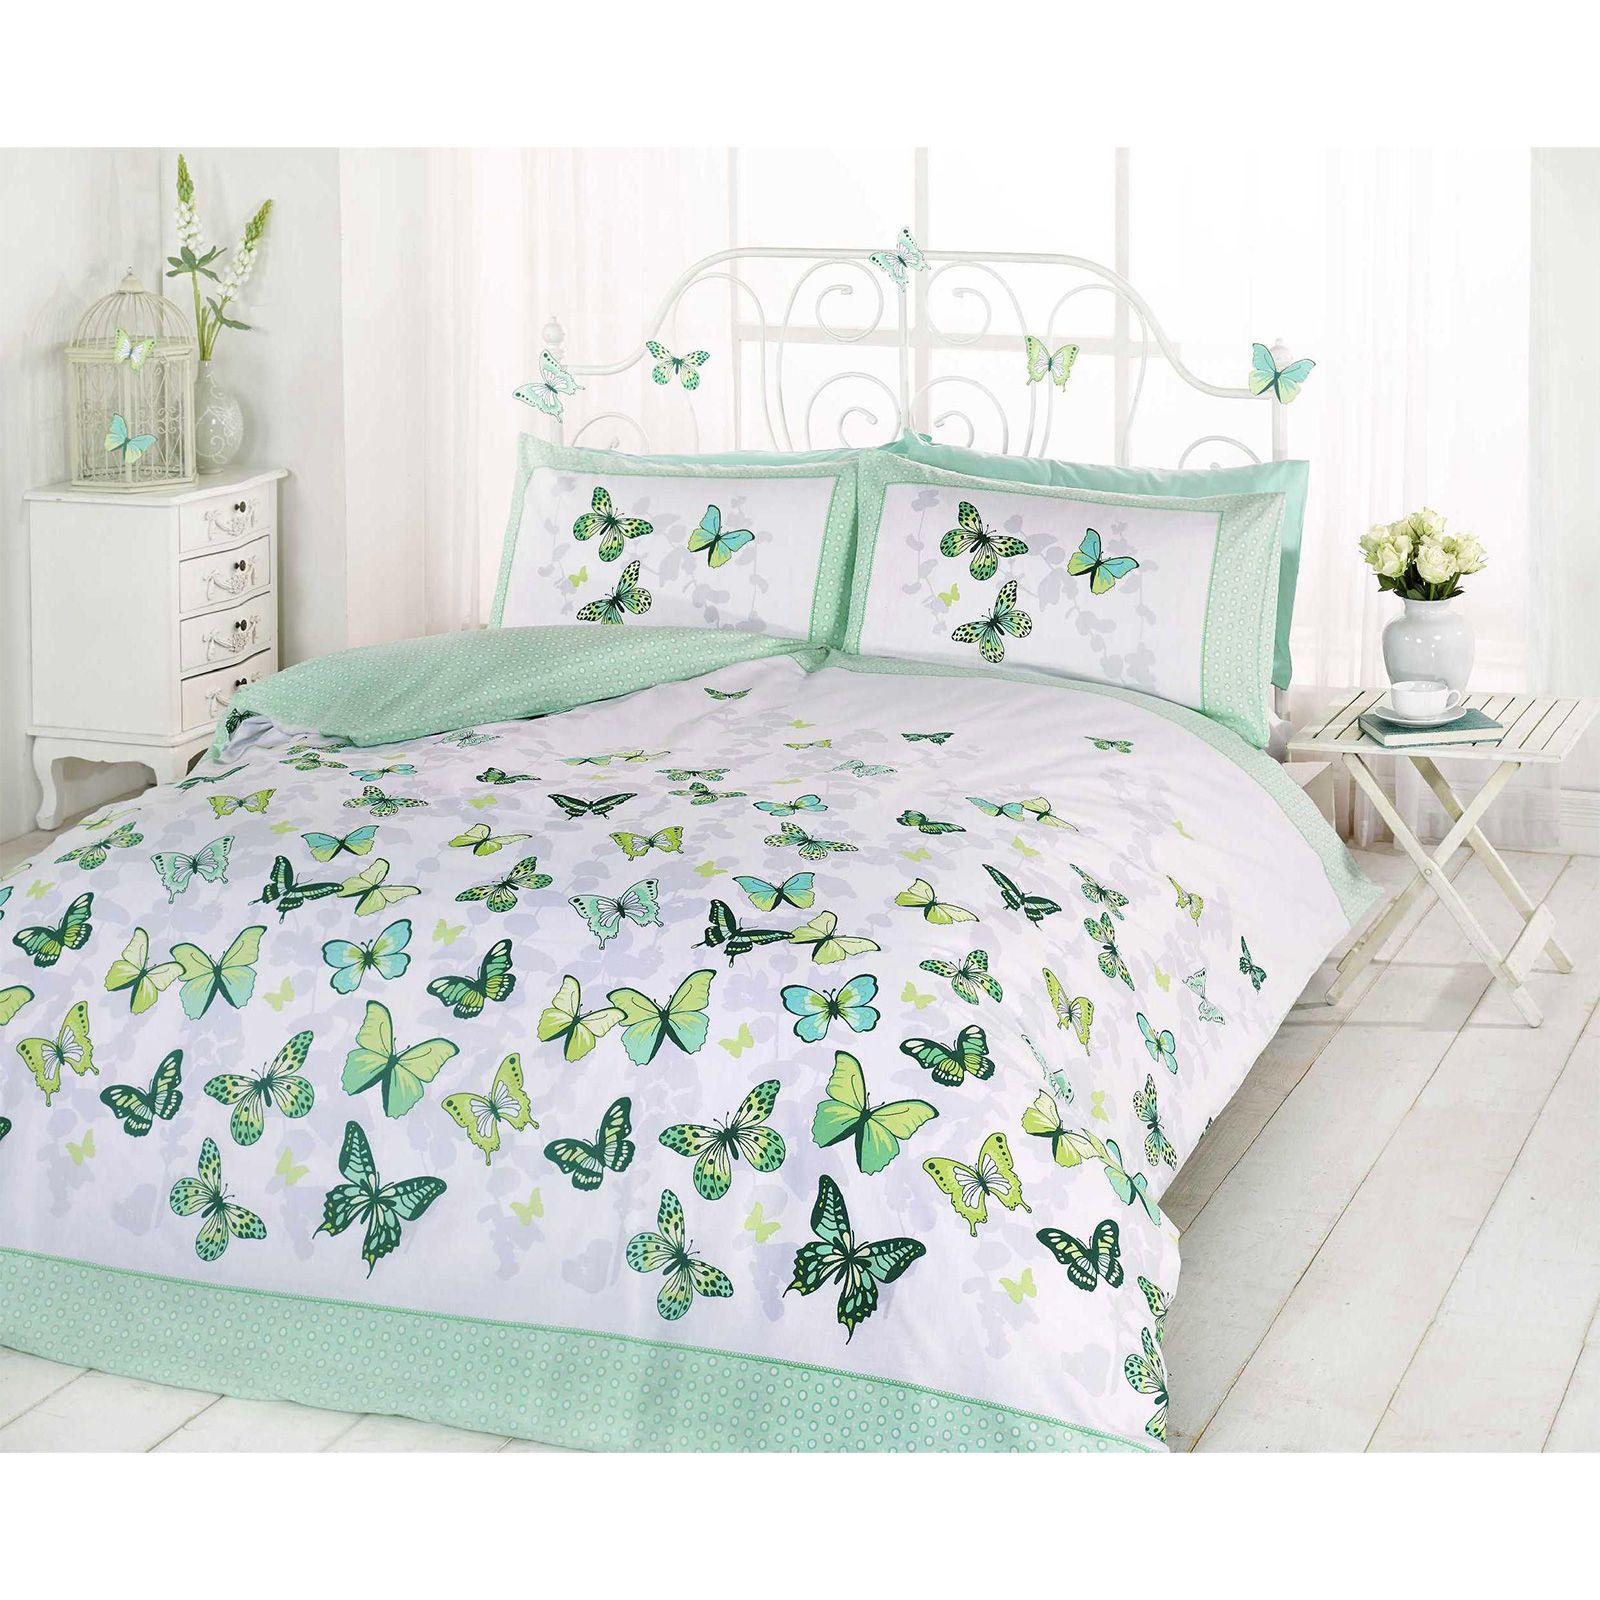 sets of butterfly image nursery bedspread set for comforter